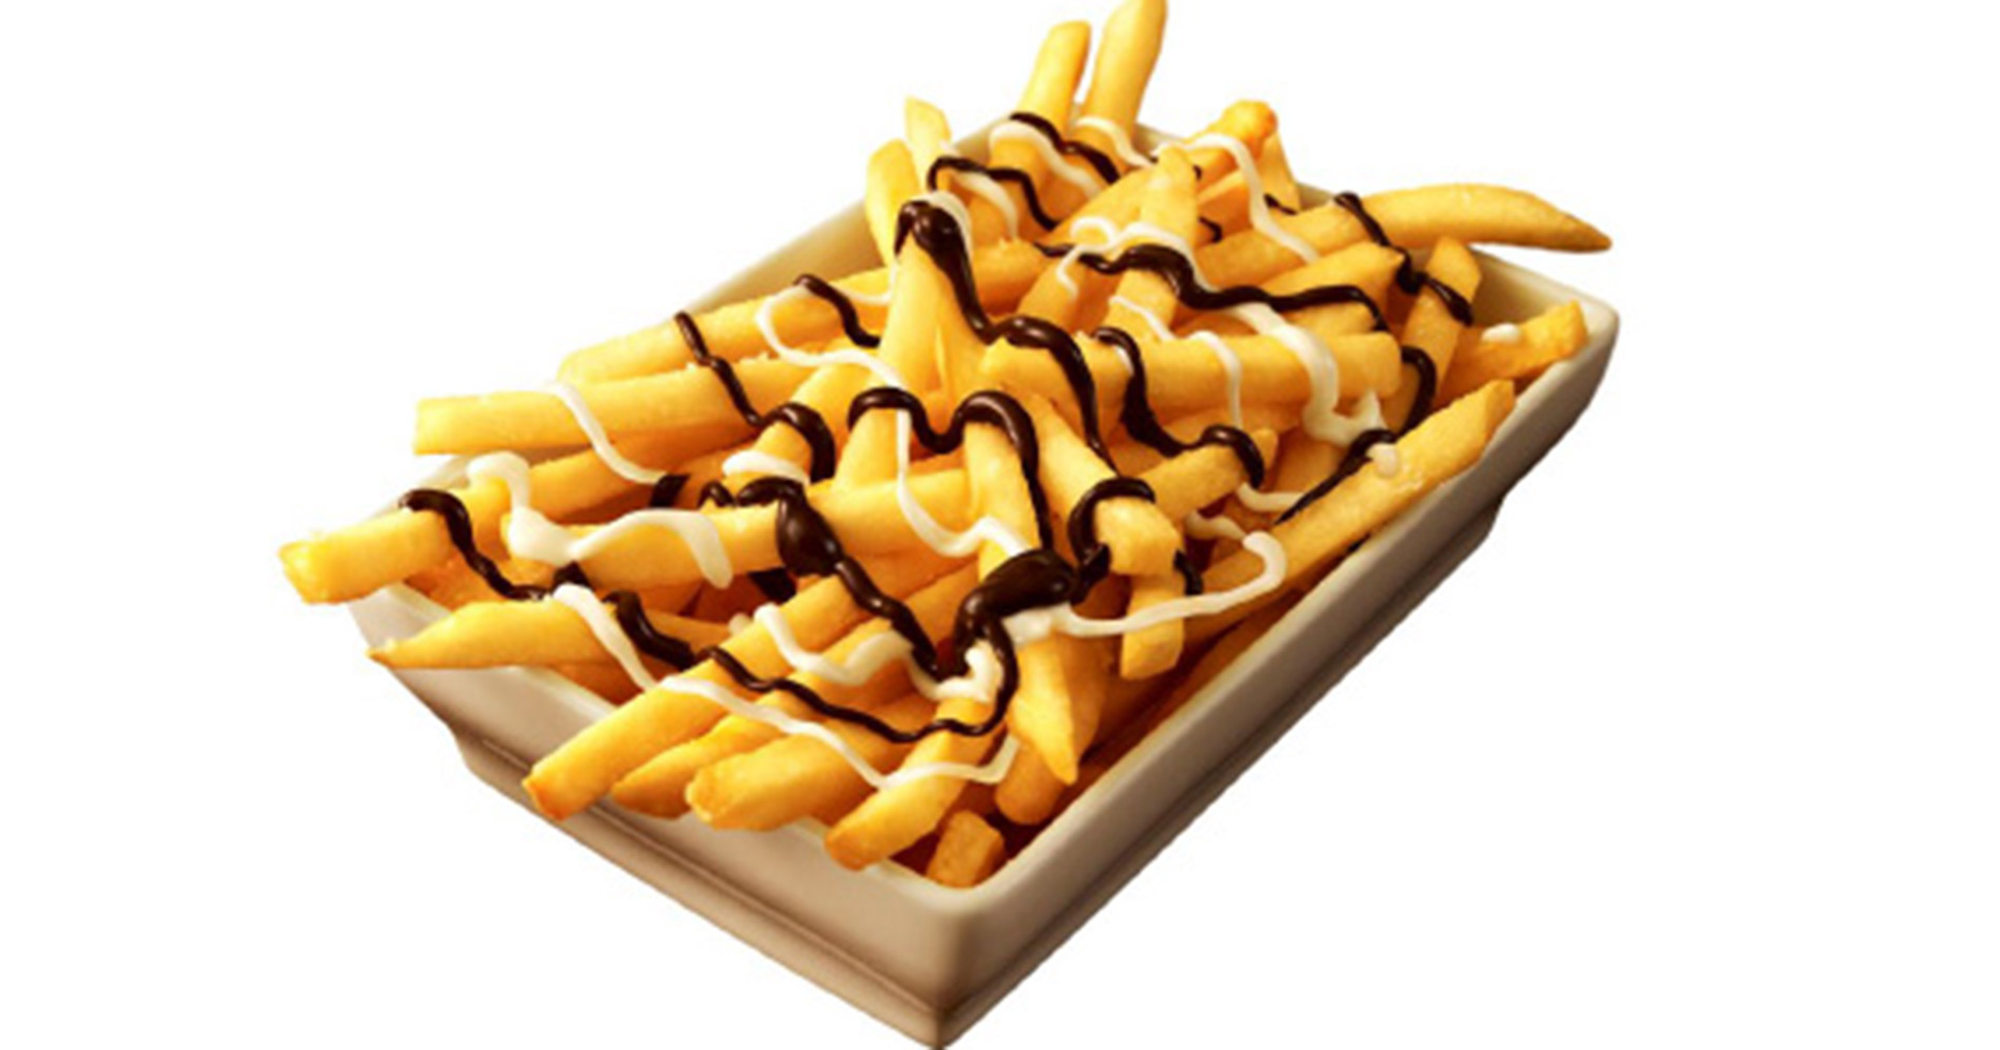 Mcdonalds Chocolate Fries Mcchoco Potatoes